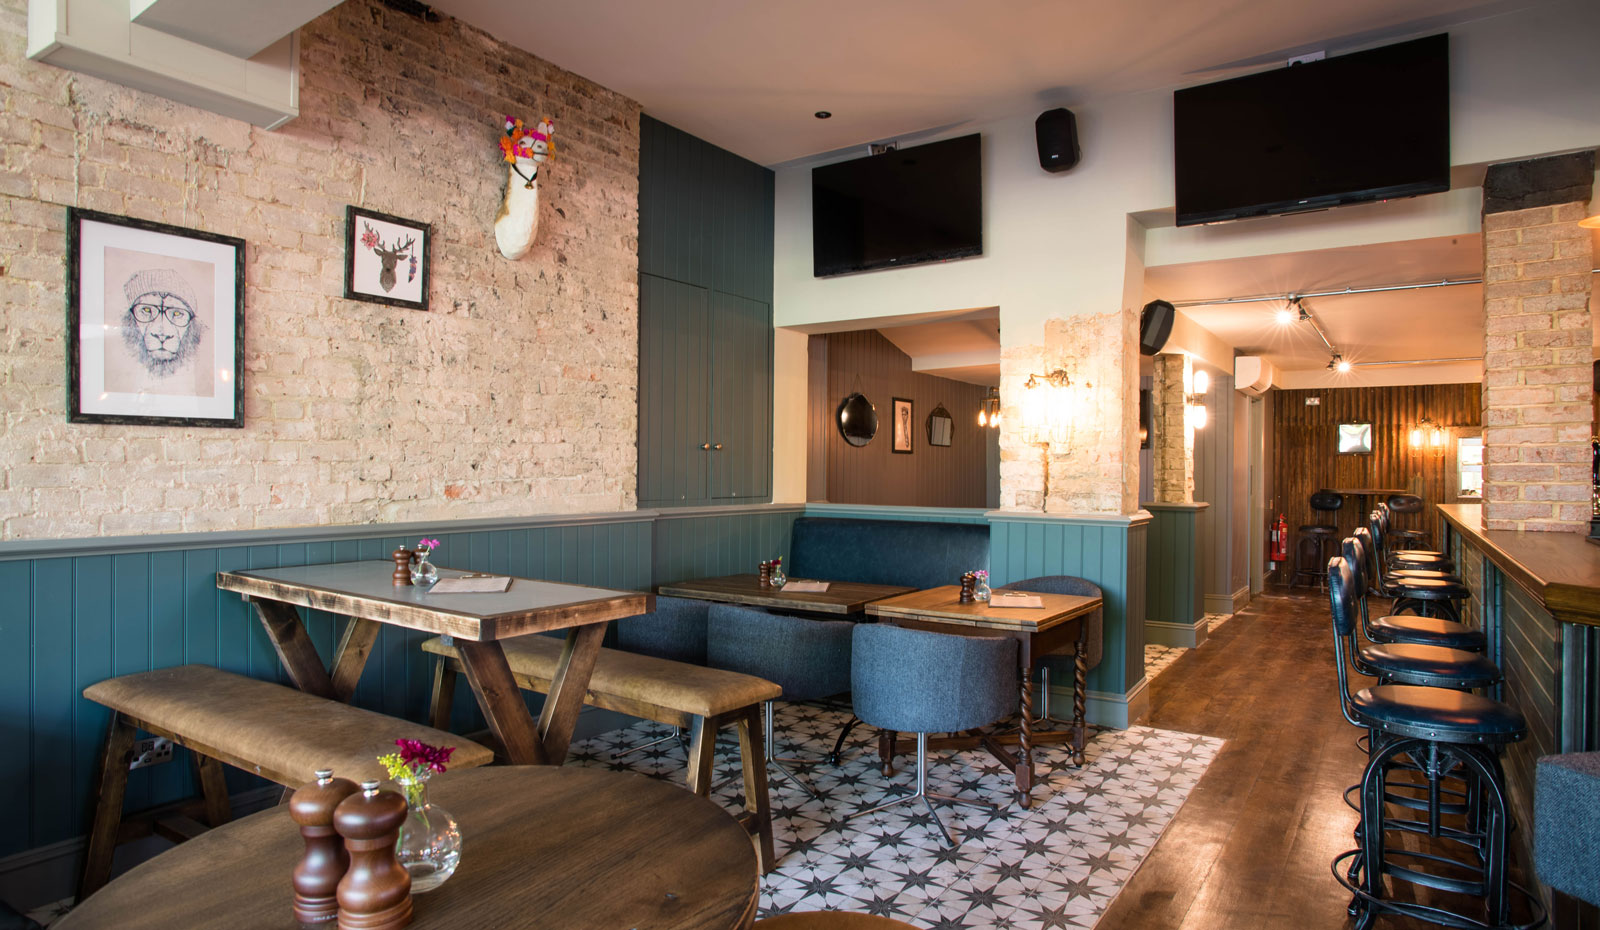 Mere-Scribbler-local-pub-streatham-venue-family-friendly